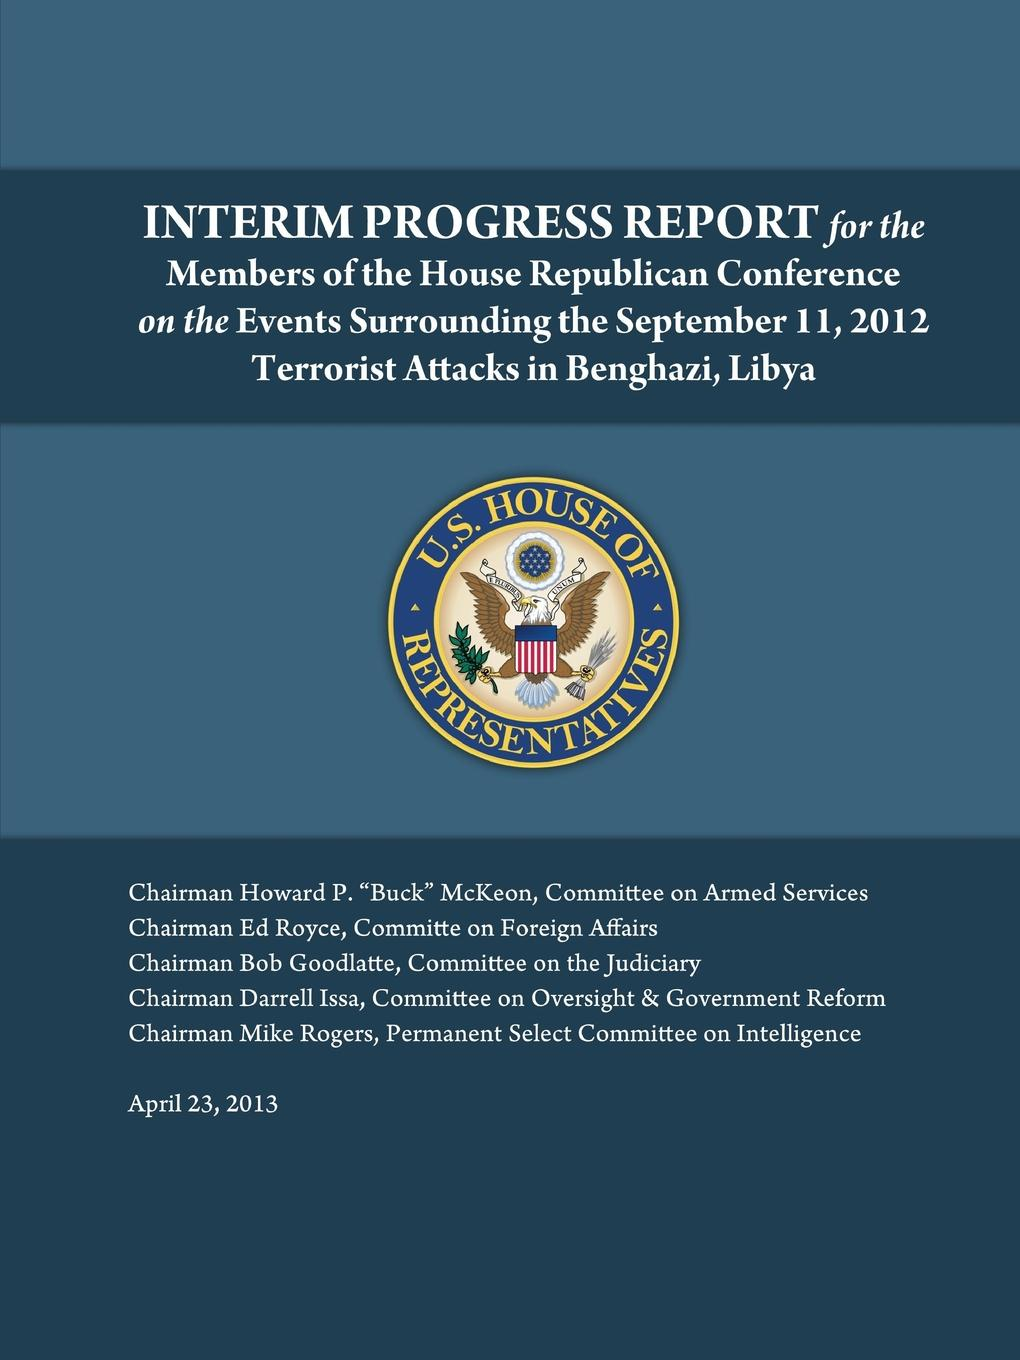 U.S. House of Representatives Interim Progress Report - For the members of the House Republican Conference on the events surrounding the September 11, 2012 terrorist attacks in Benghazi, Libya malcolm kemp extreme events robust portfolio construction in the presence of fat tails isbn 9780470976791